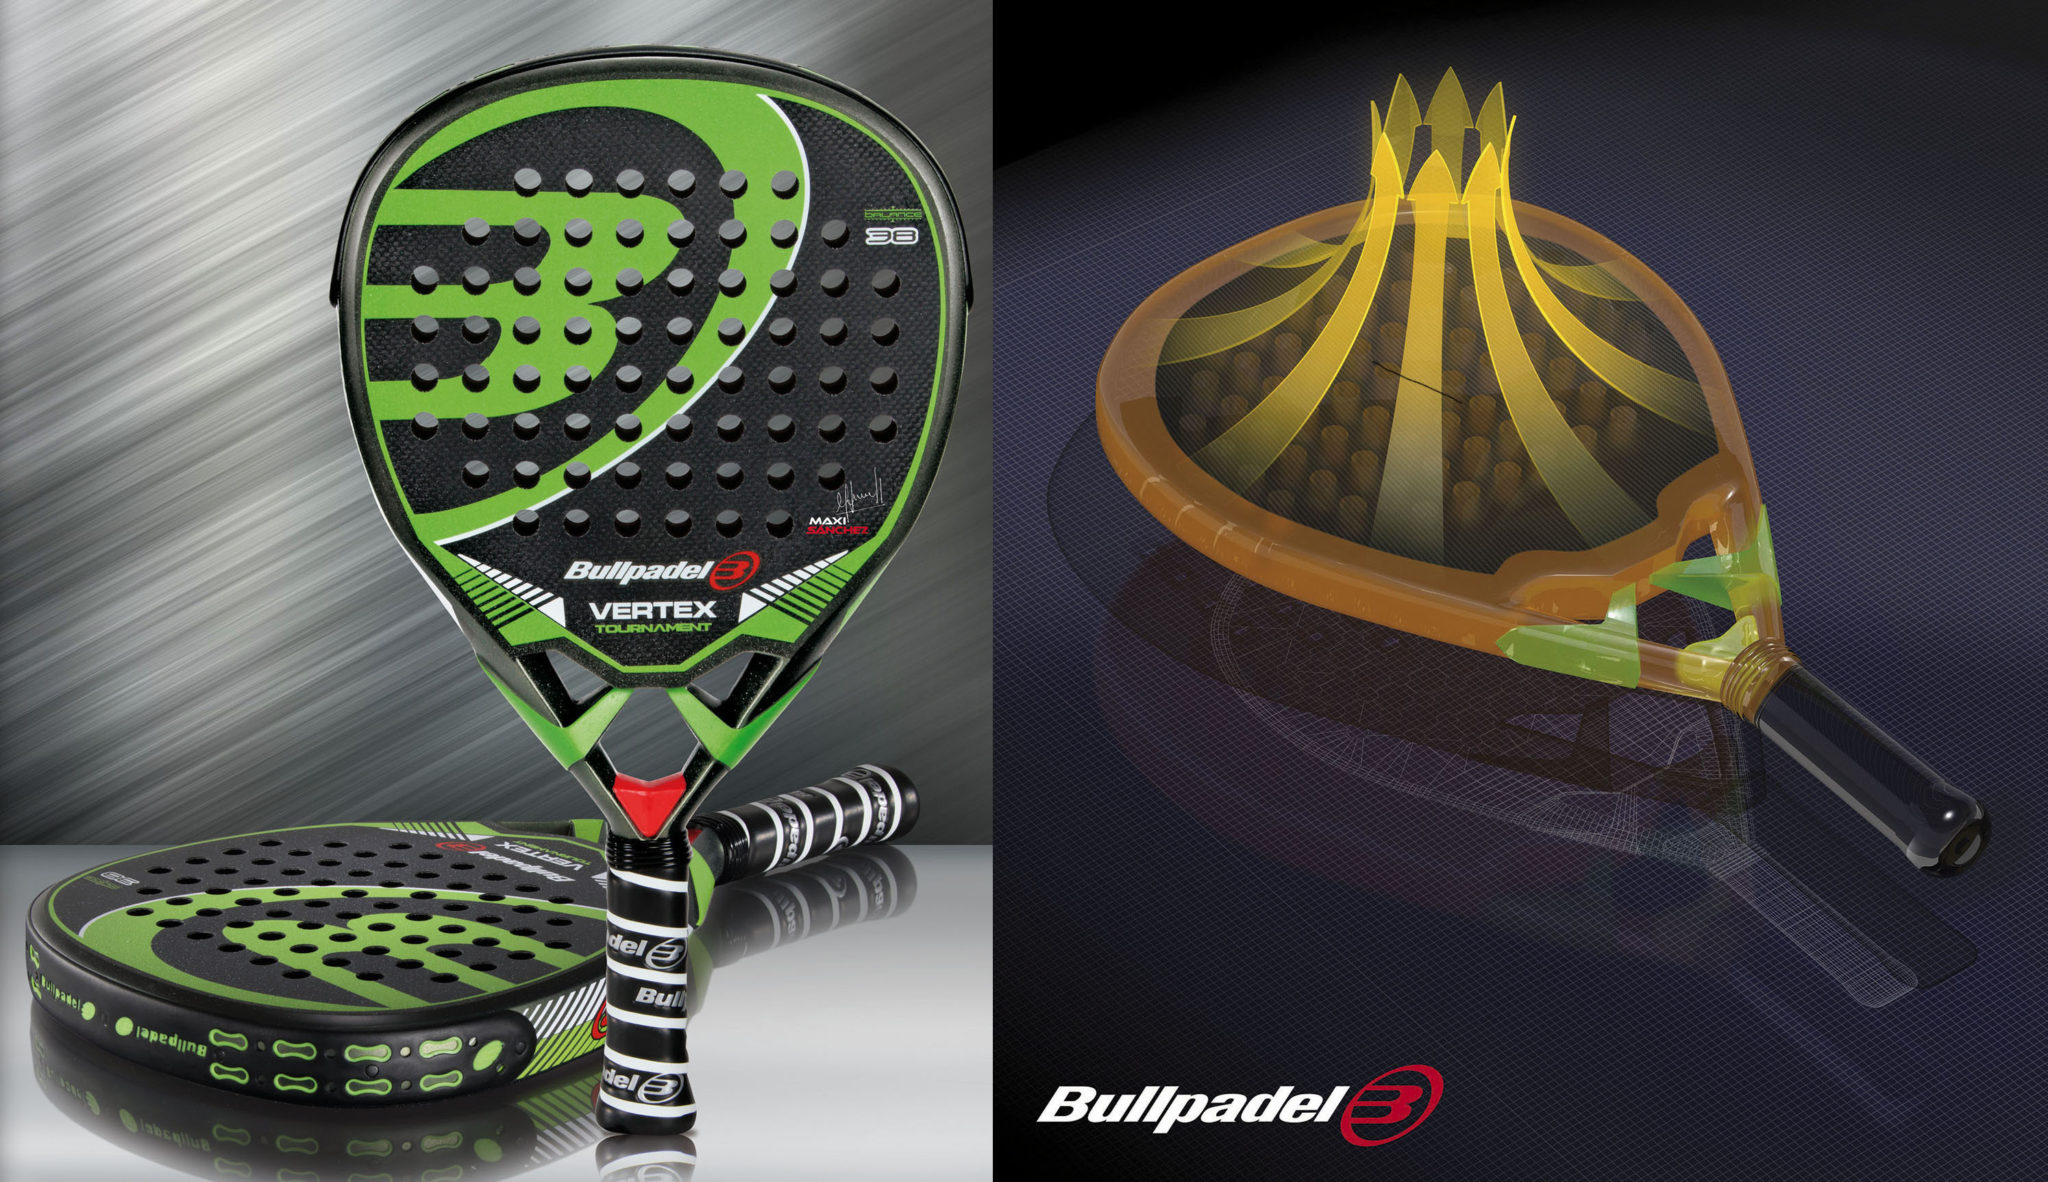 VERTEX DE BULLPADEL